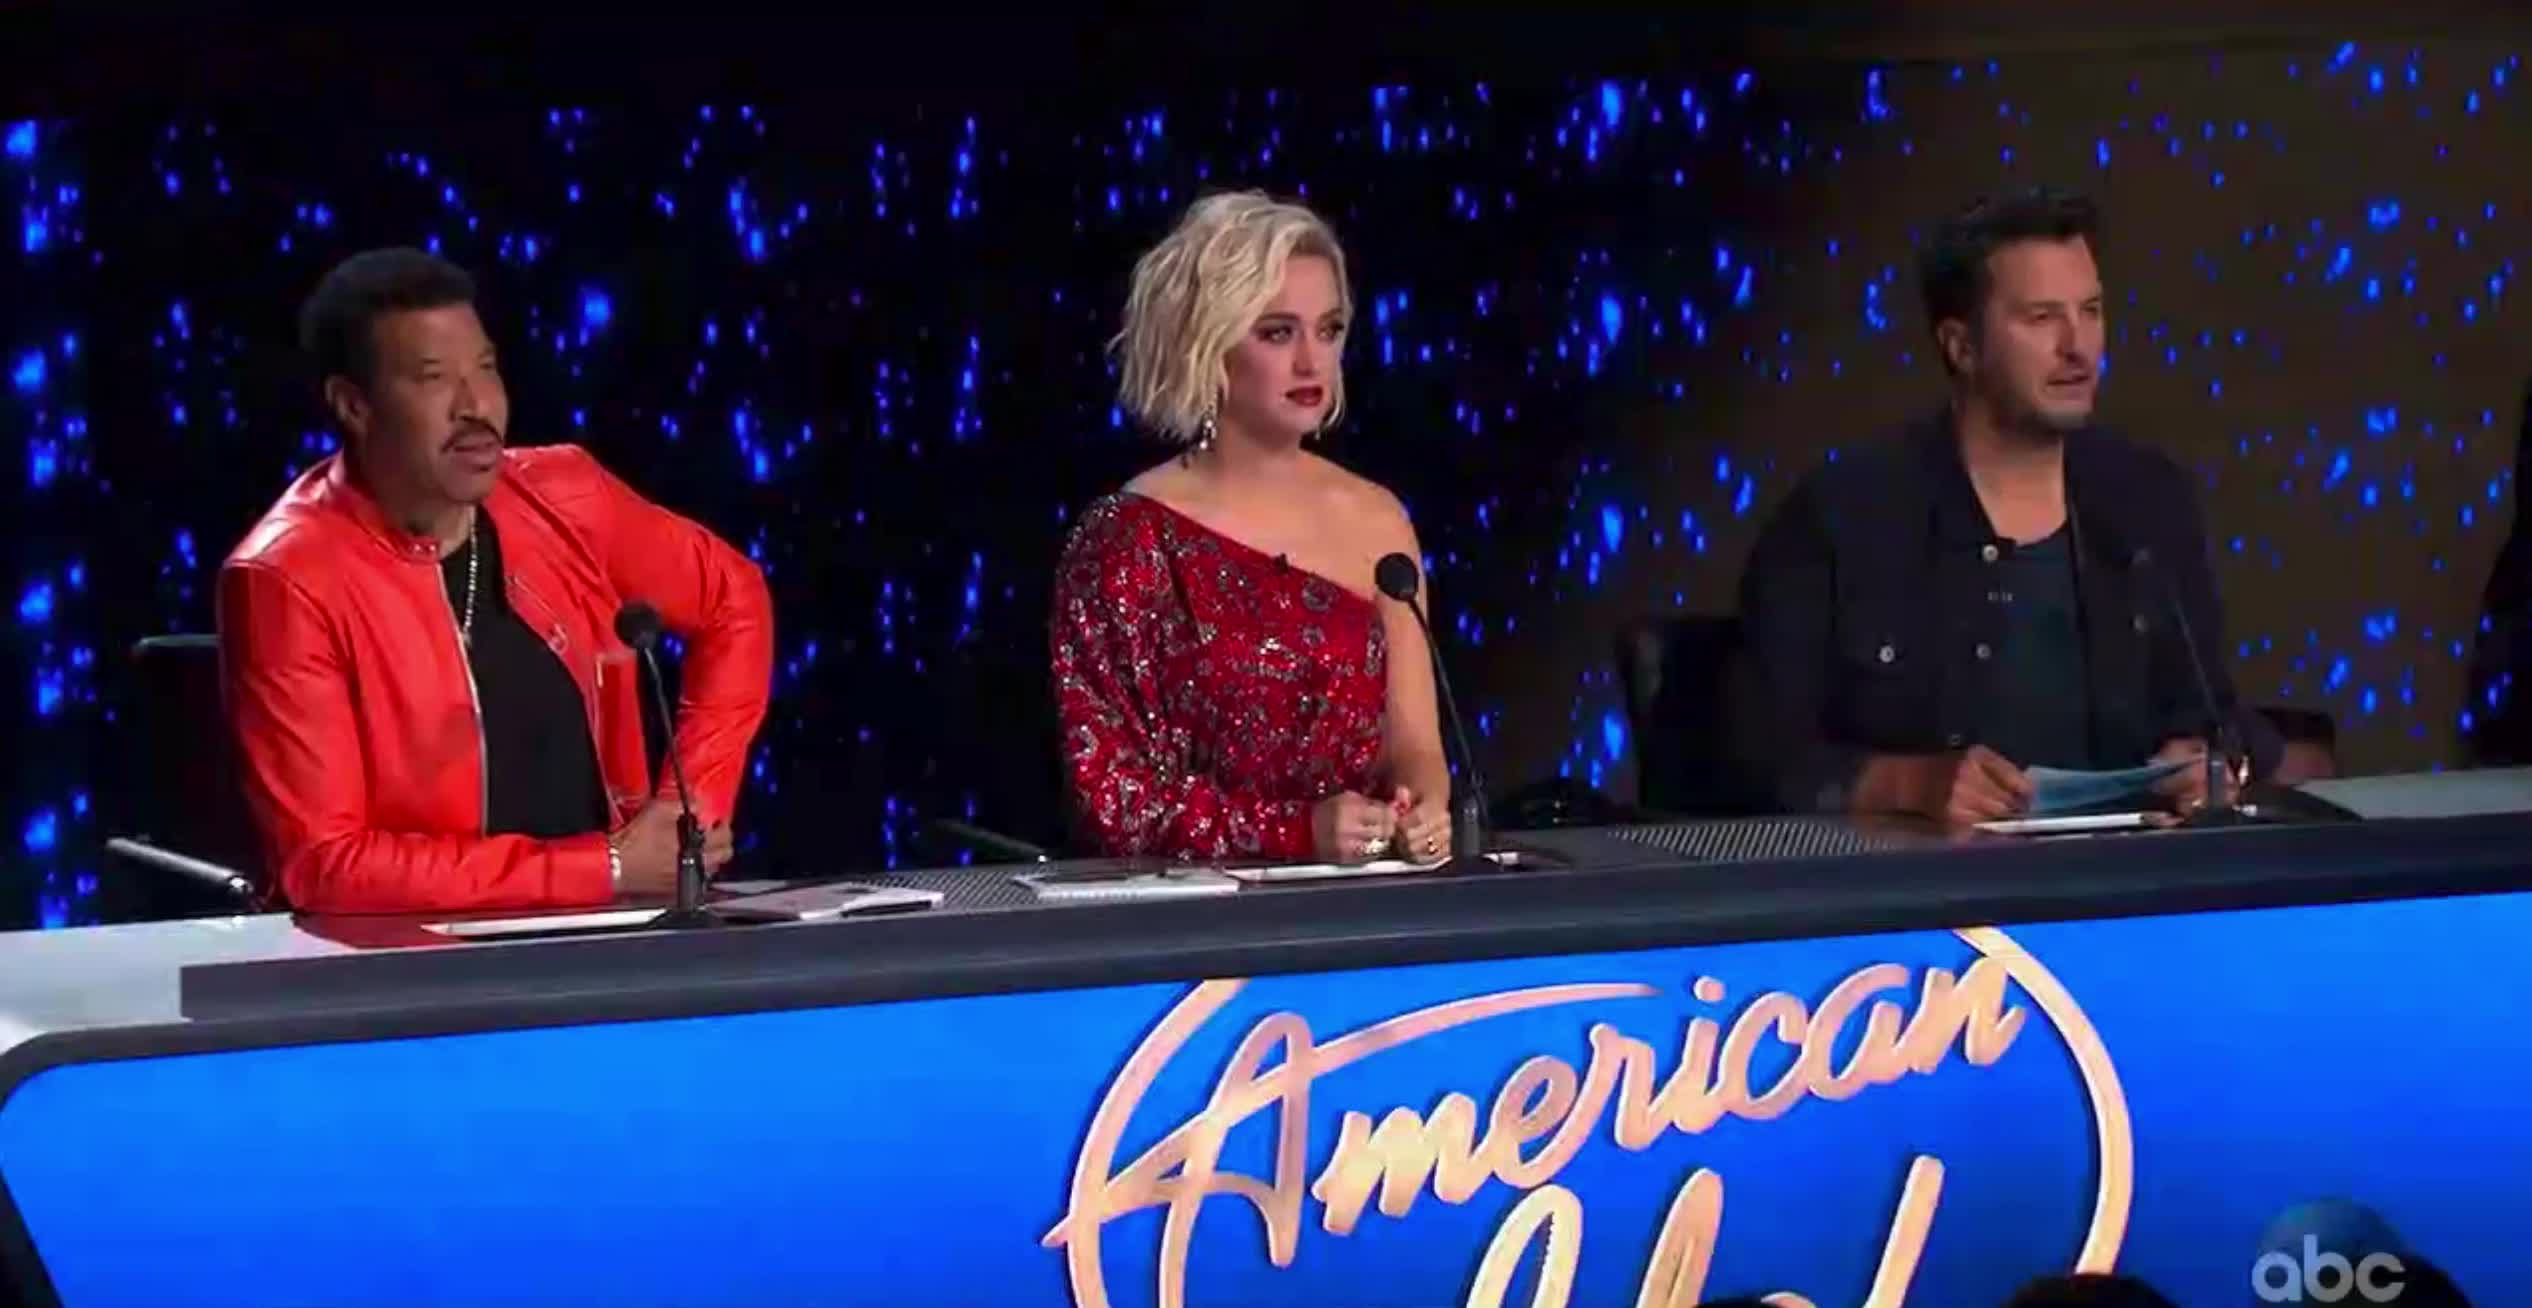 american idol, american idol season 17, americanidol, judges, katy perry, lionel richie, luke bryan, ryan seacrest, season 17, yeah, yes, American Idol Judges Nodding Yes GIFs